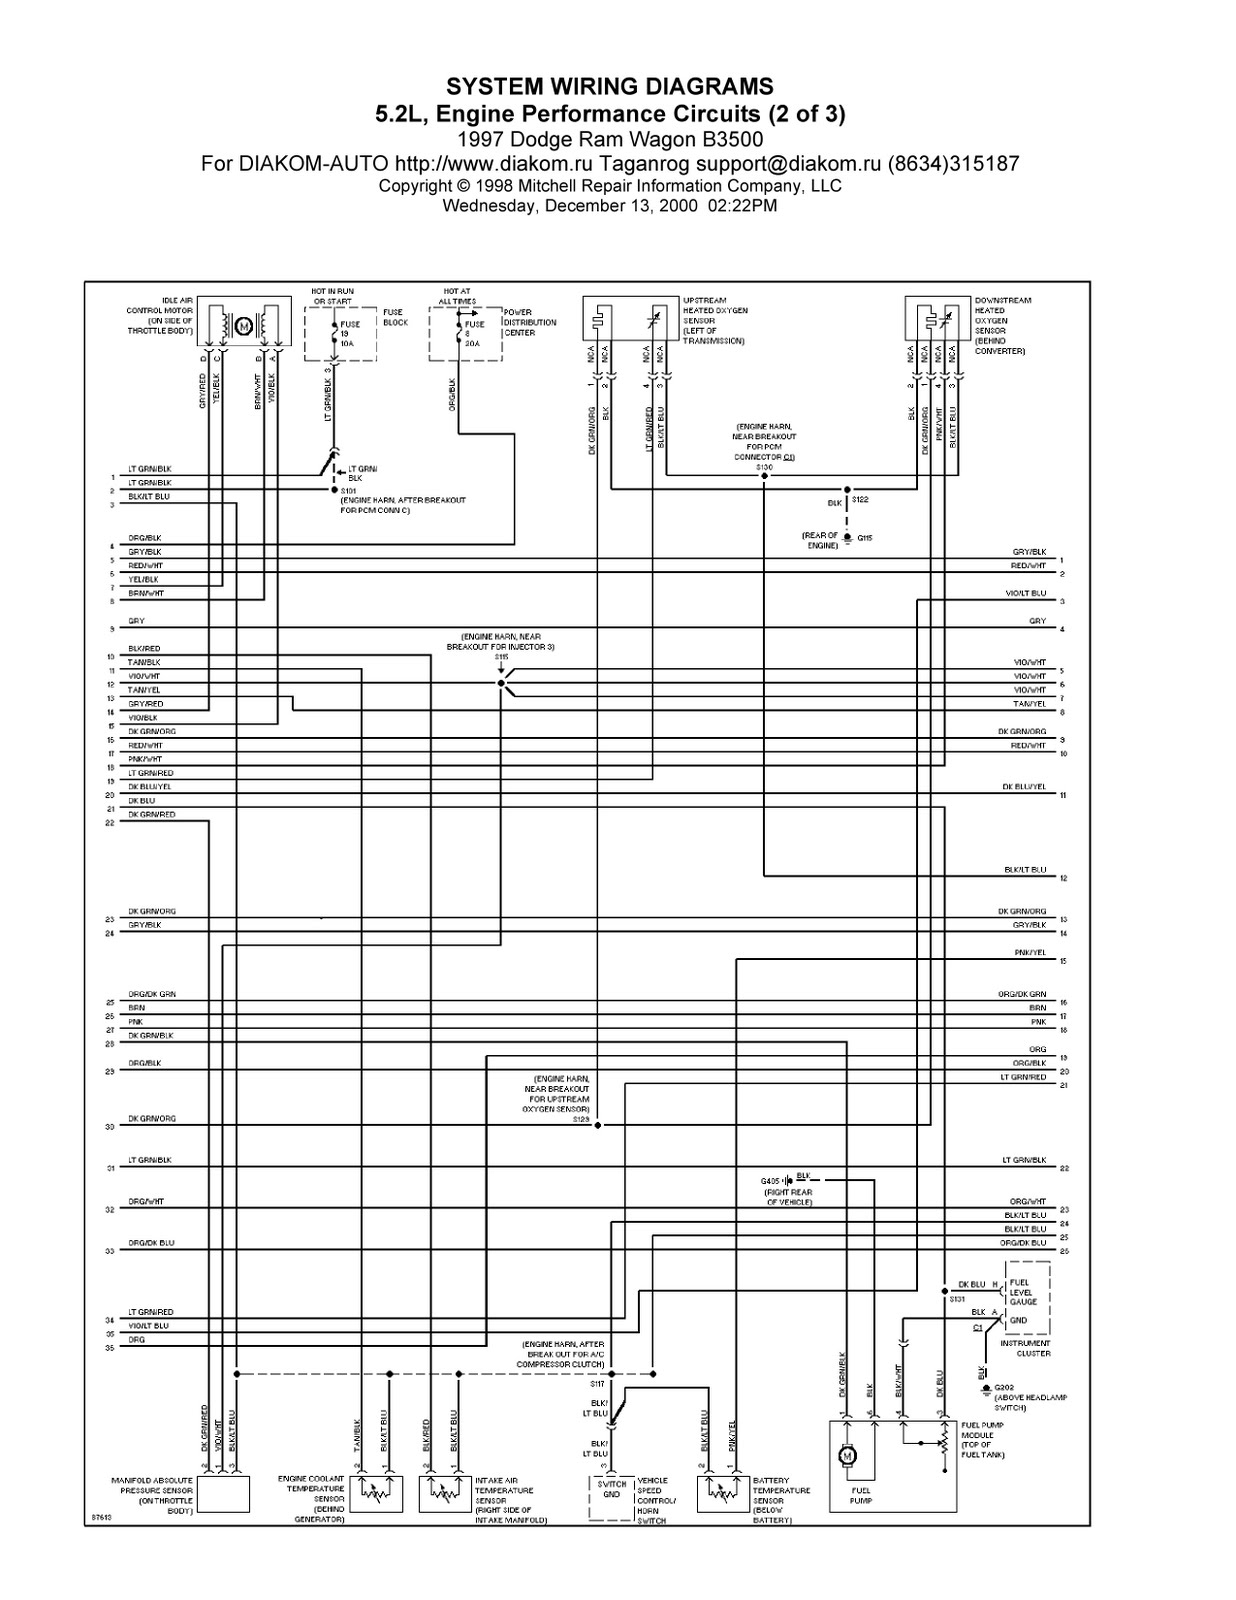 2004 Dodge Ram Headlight Wiring Diagram from 3.bp.blogspot.com